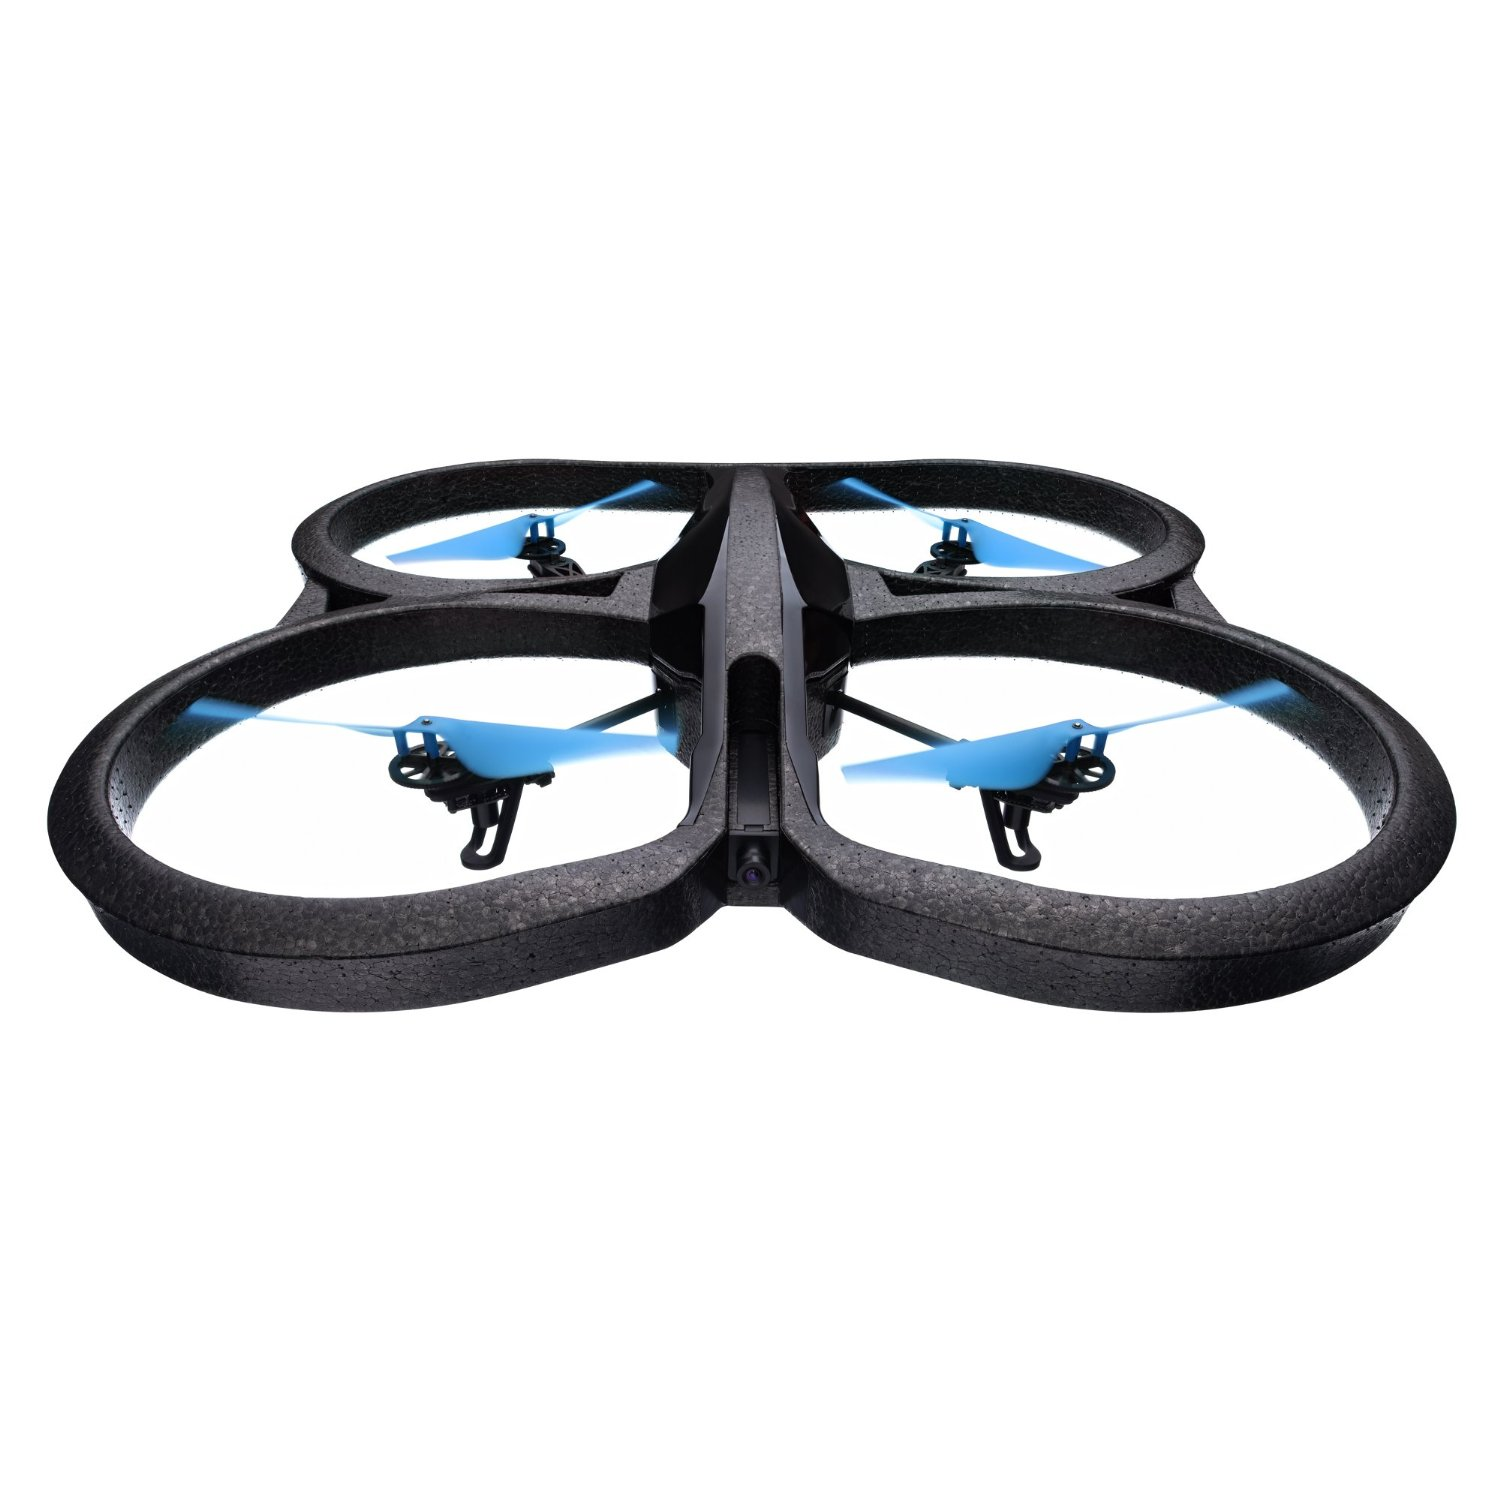 parrot ar drone 2 with Flightable Drone In Japan on Watch further Parrots Ebee Can Fly 50minutes together with Best Drones Hd Camera further Flightable Drone In Japan besides Parrot Ar Drone 2 0 Quadcopter Review.